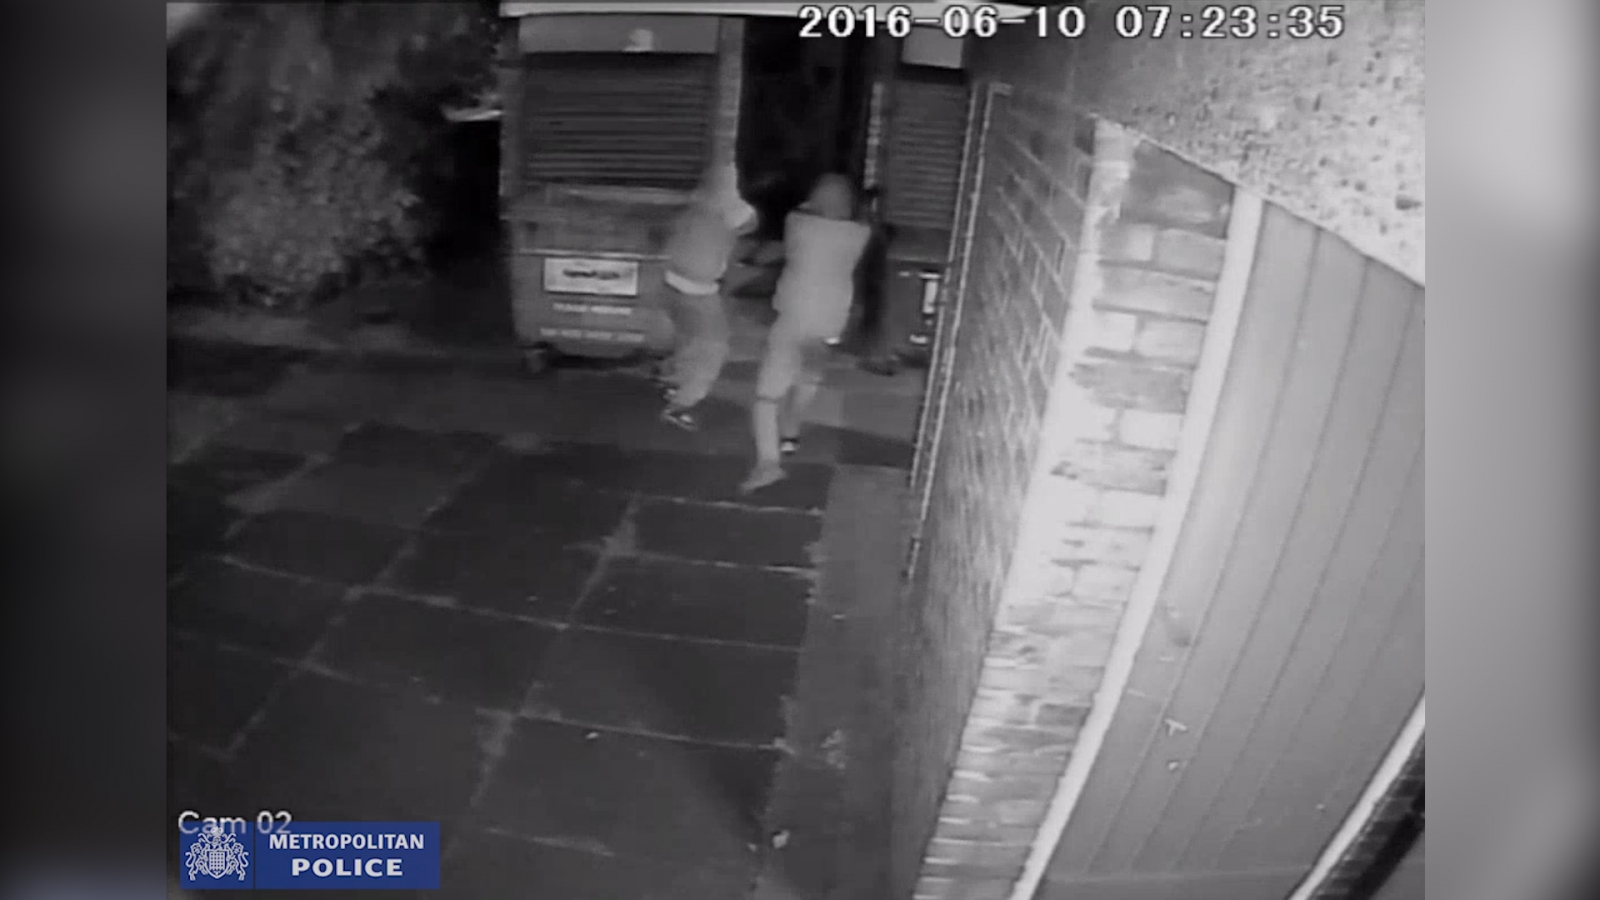 cctv-footage-of-attempted-murder-suspects-wielding-semi-automatic-weapons